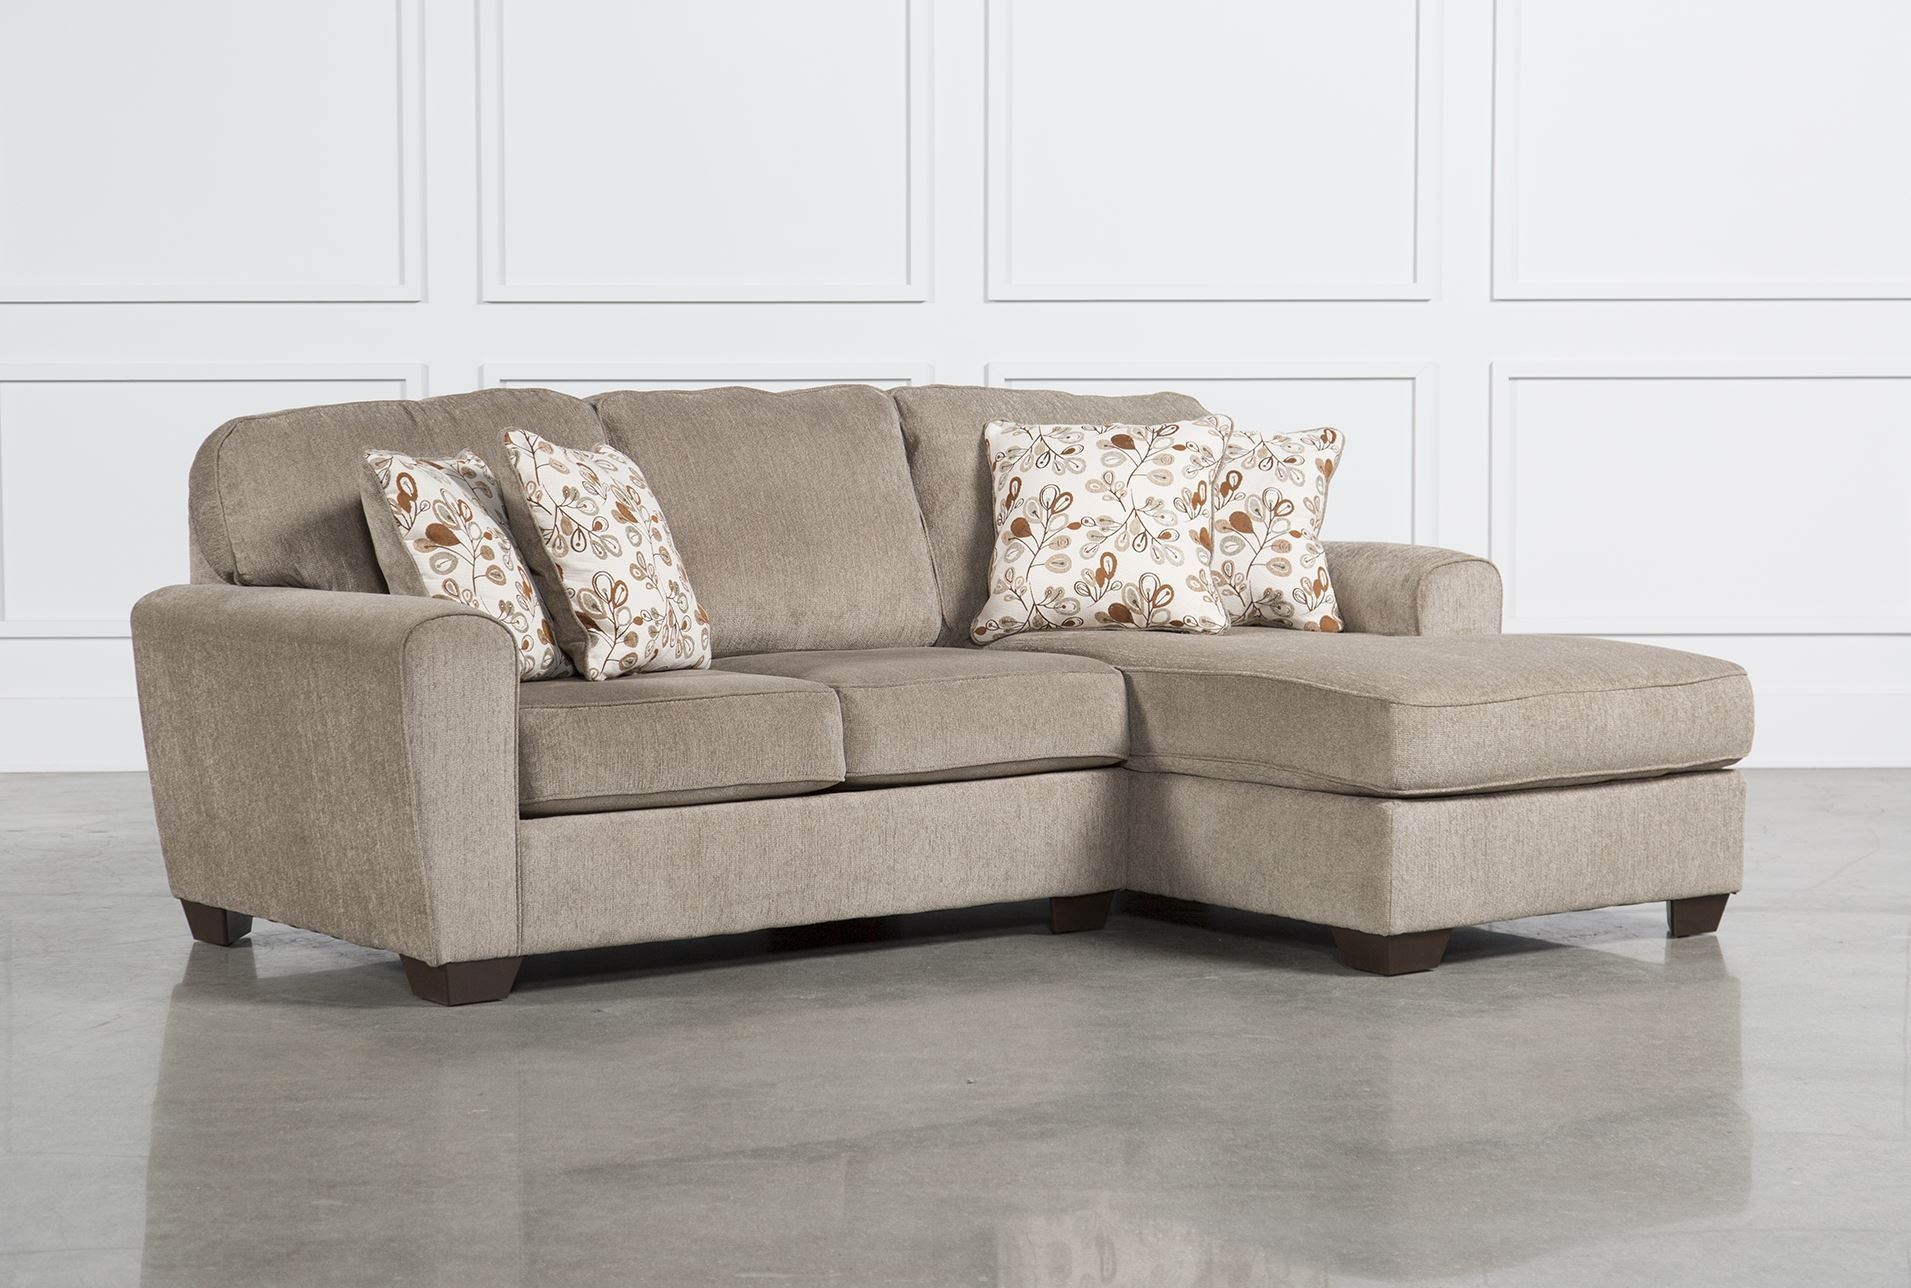 Collection Of Solutions 2 Piece Chaise Sectional With Patola Park 2 within Delano 2 Piece Sectionals With Raf Oversized Chaise (Image 12 of 30)